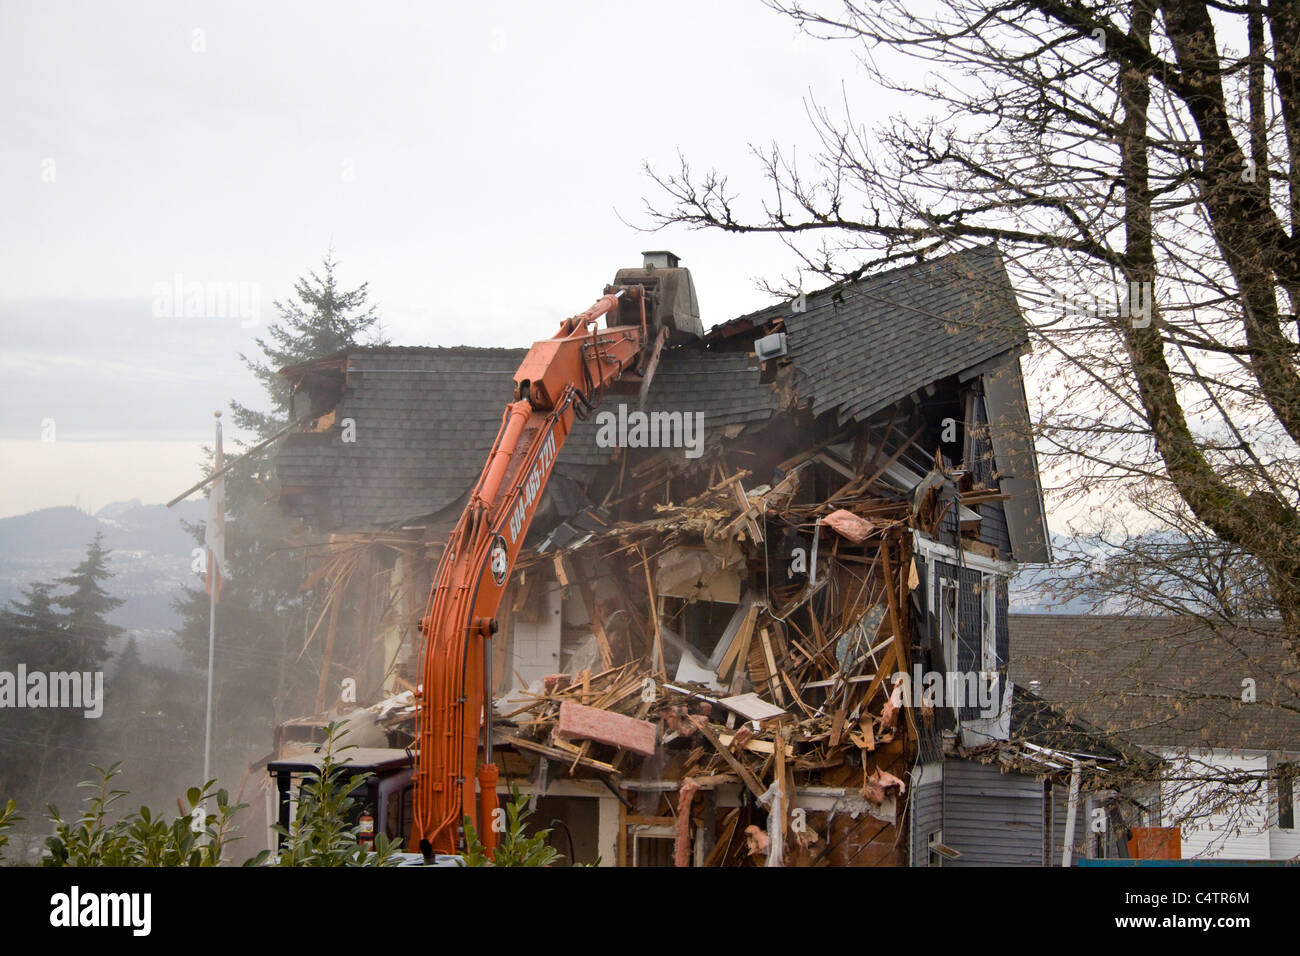 98 year old heritage house being demolished to make way for a newer building - Stock Image